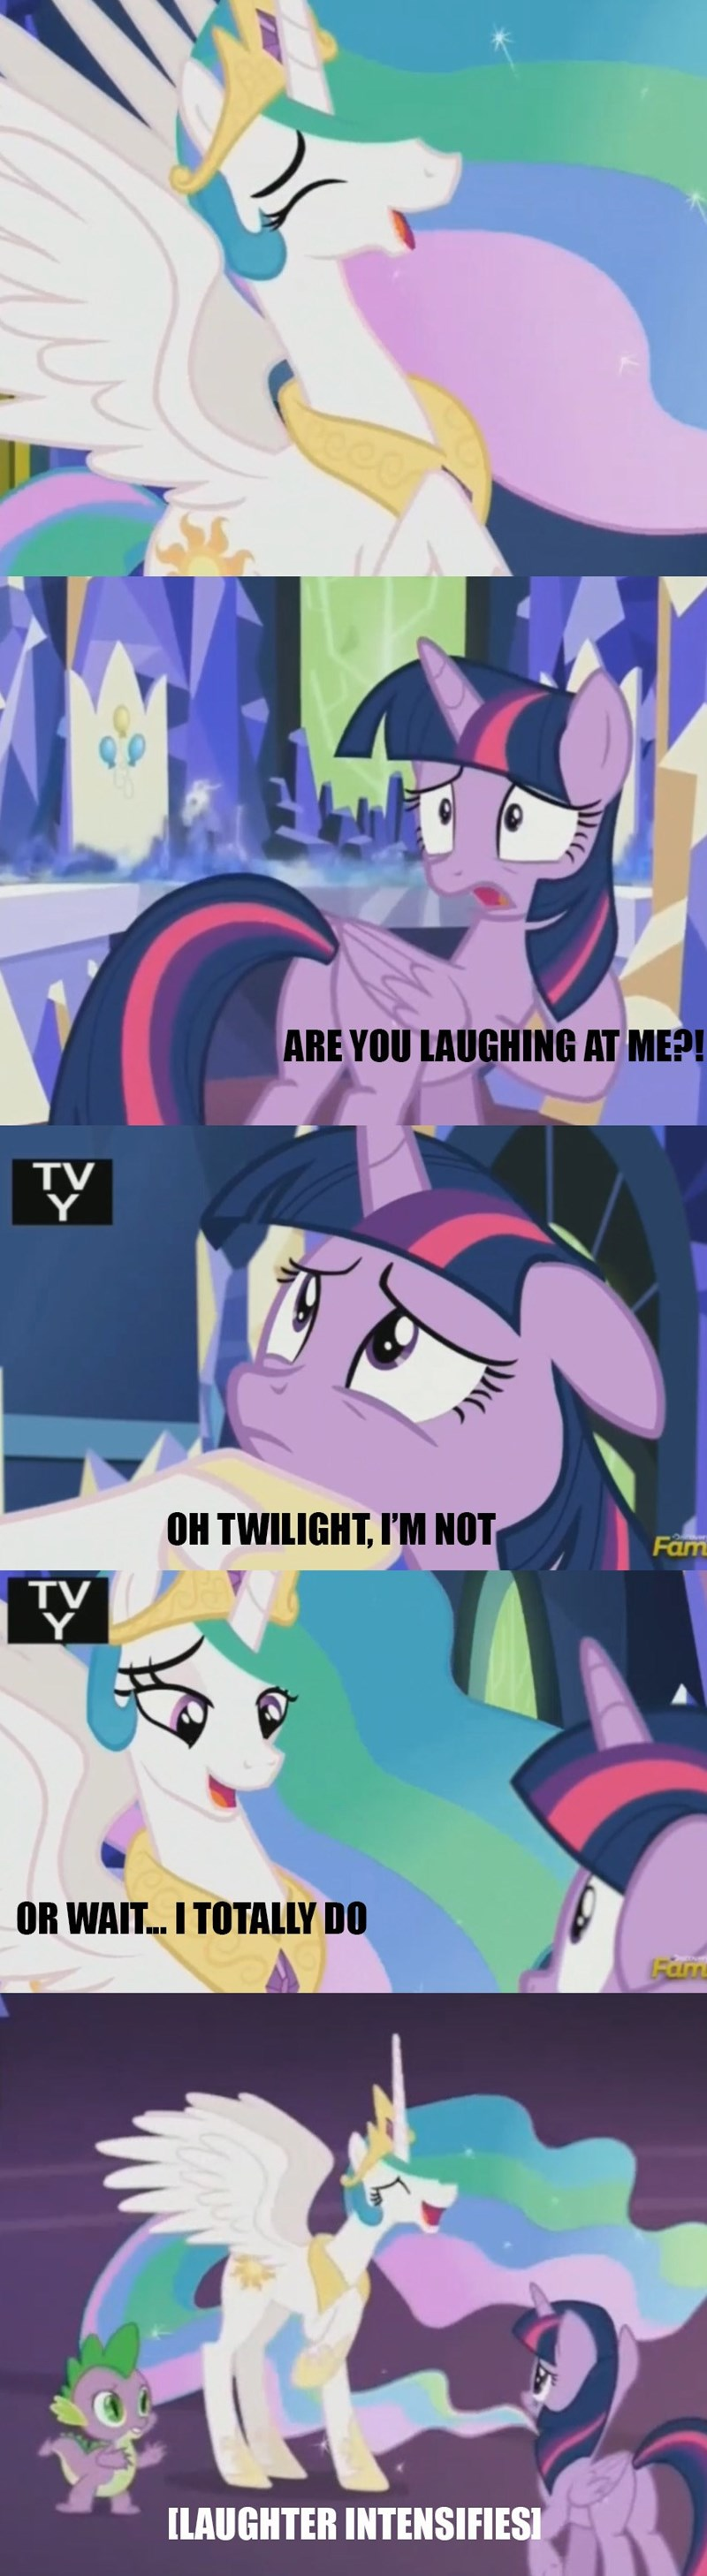 celestial advice trollestia twilight sparkle screencap comic princess celestia - 9027159040